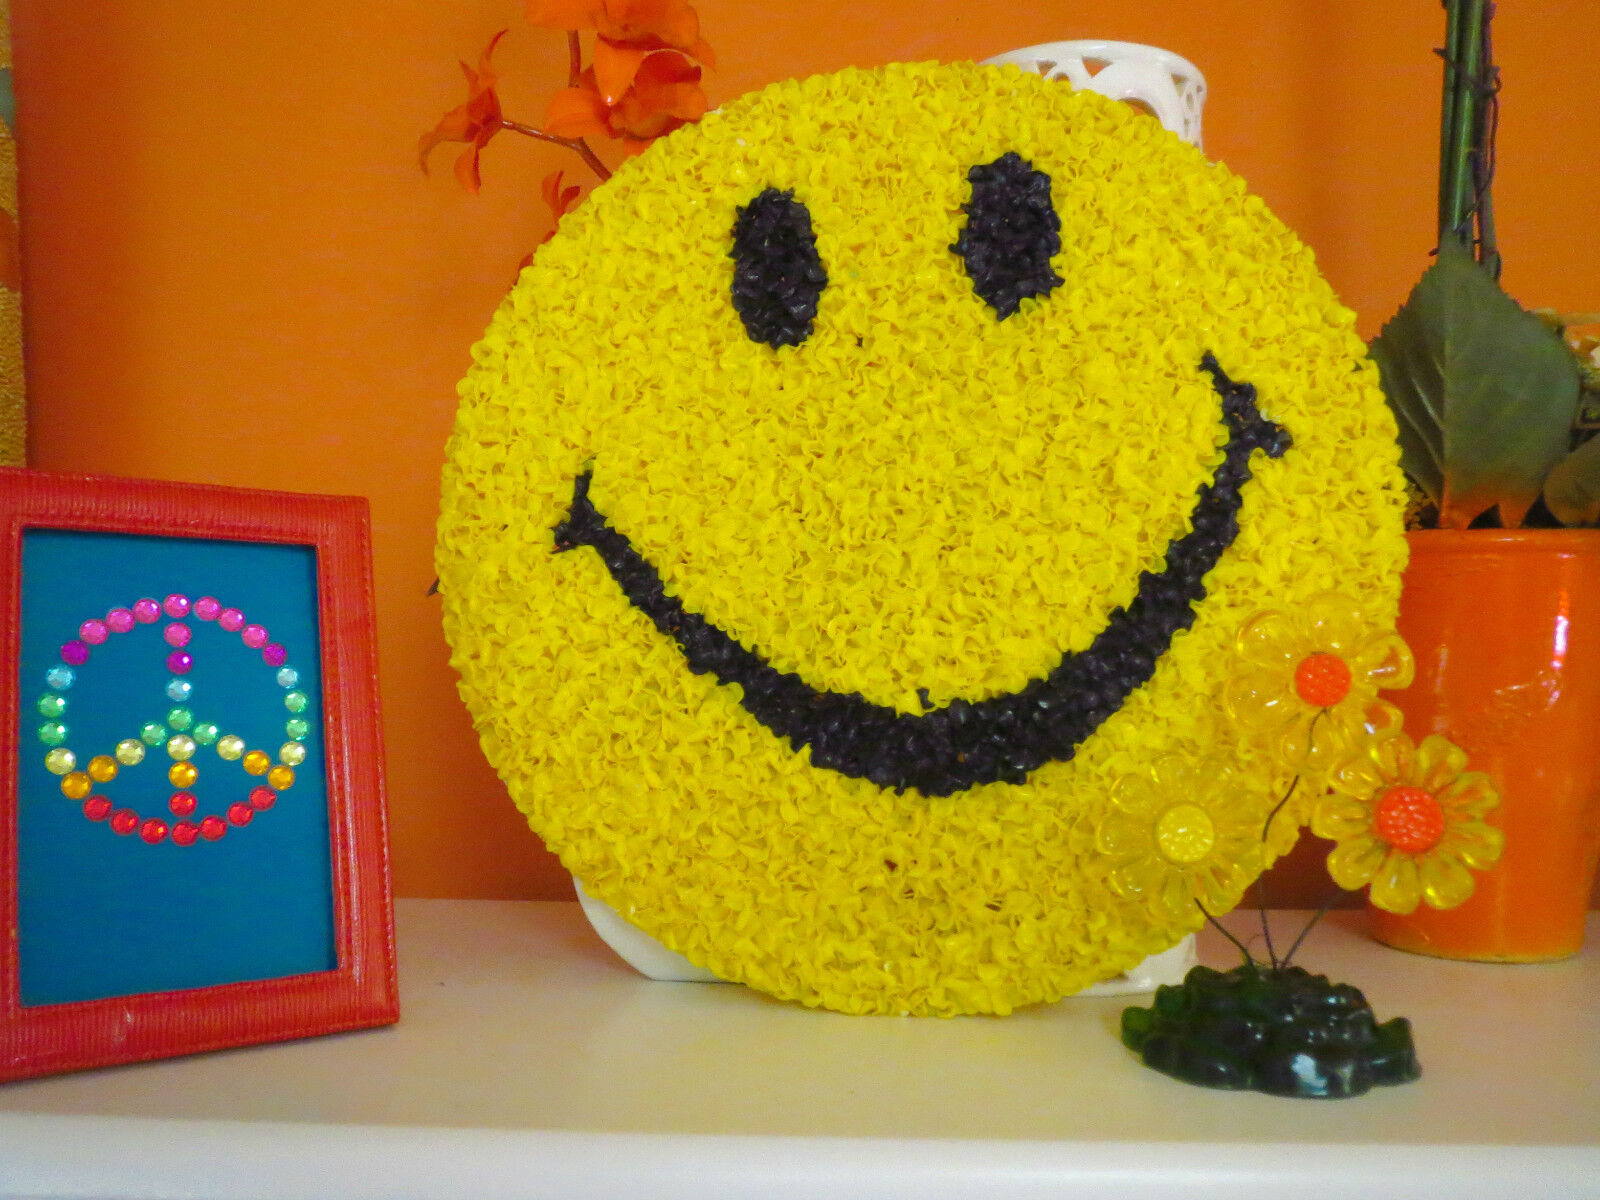 VTG 1970s Retro Groovy MOD Plastic Melted Popcorn Wall Art Smile ...